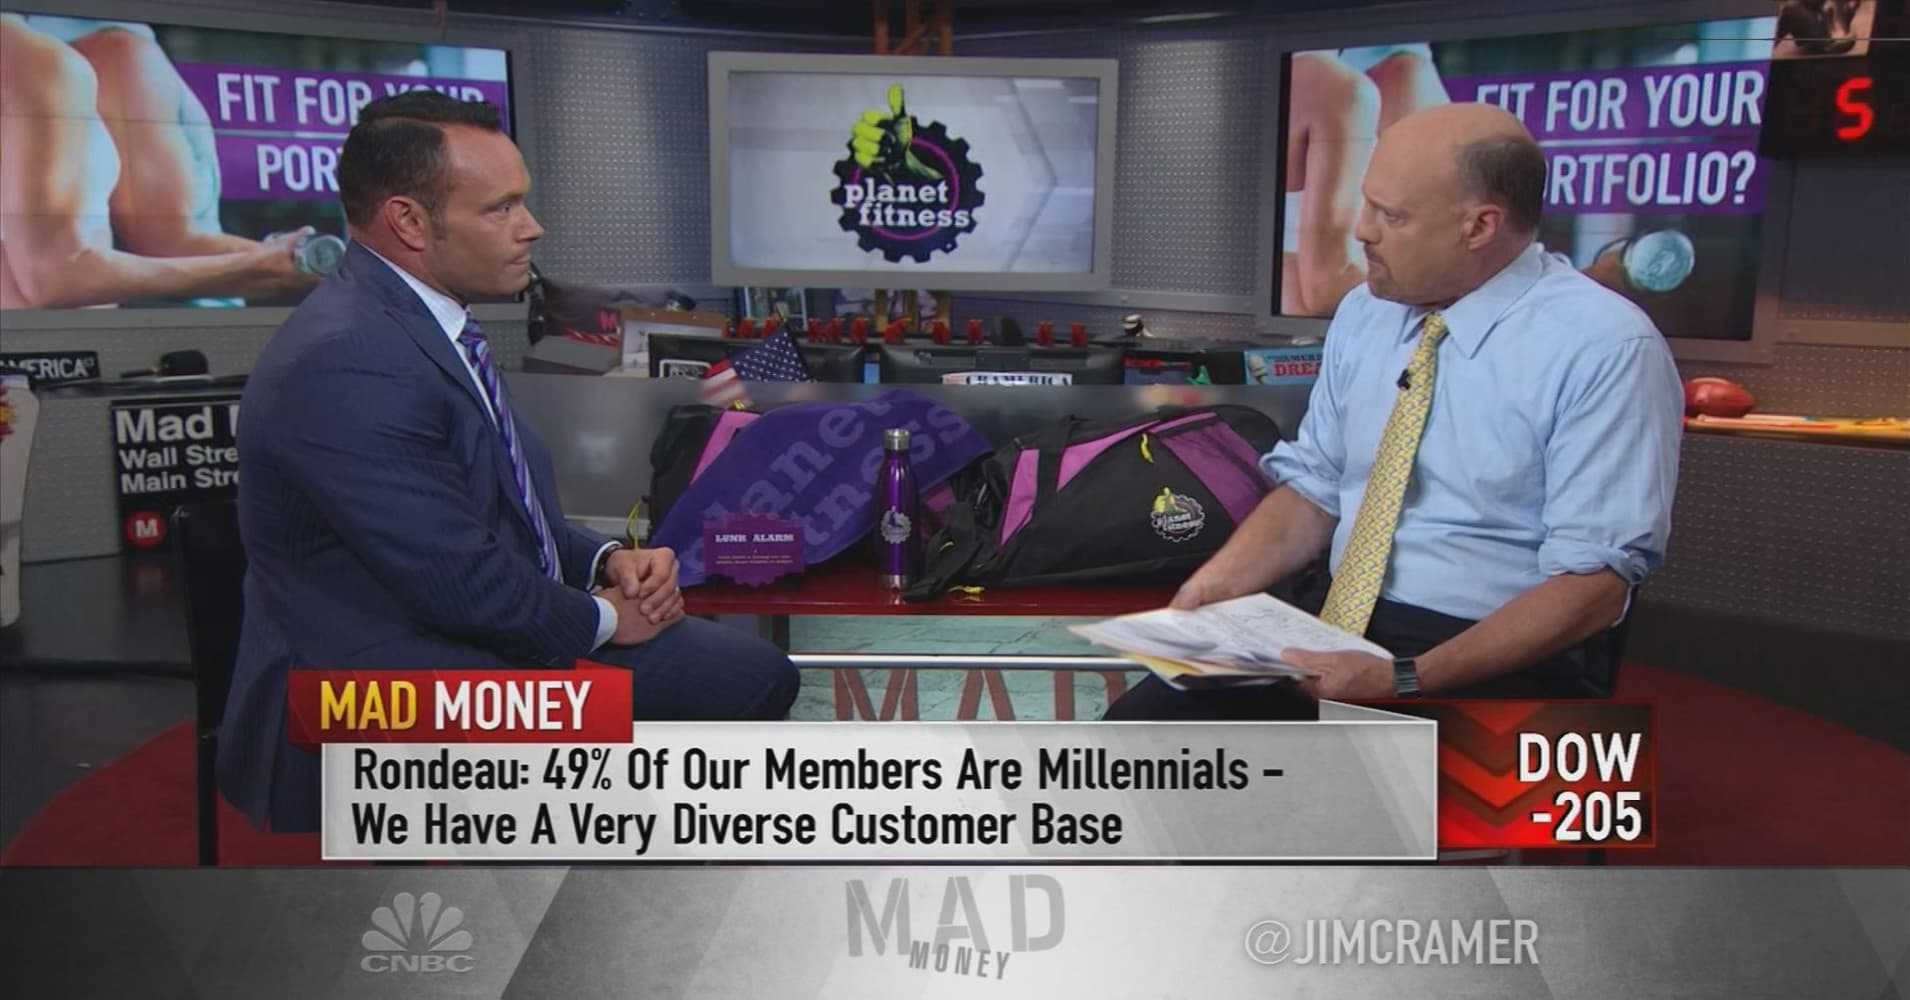 Planet fitness ceo gym franchise runs on being a marketing machine planet fitness ceo says his 10 million member franchise runs on being a buycottarizona Choice Image